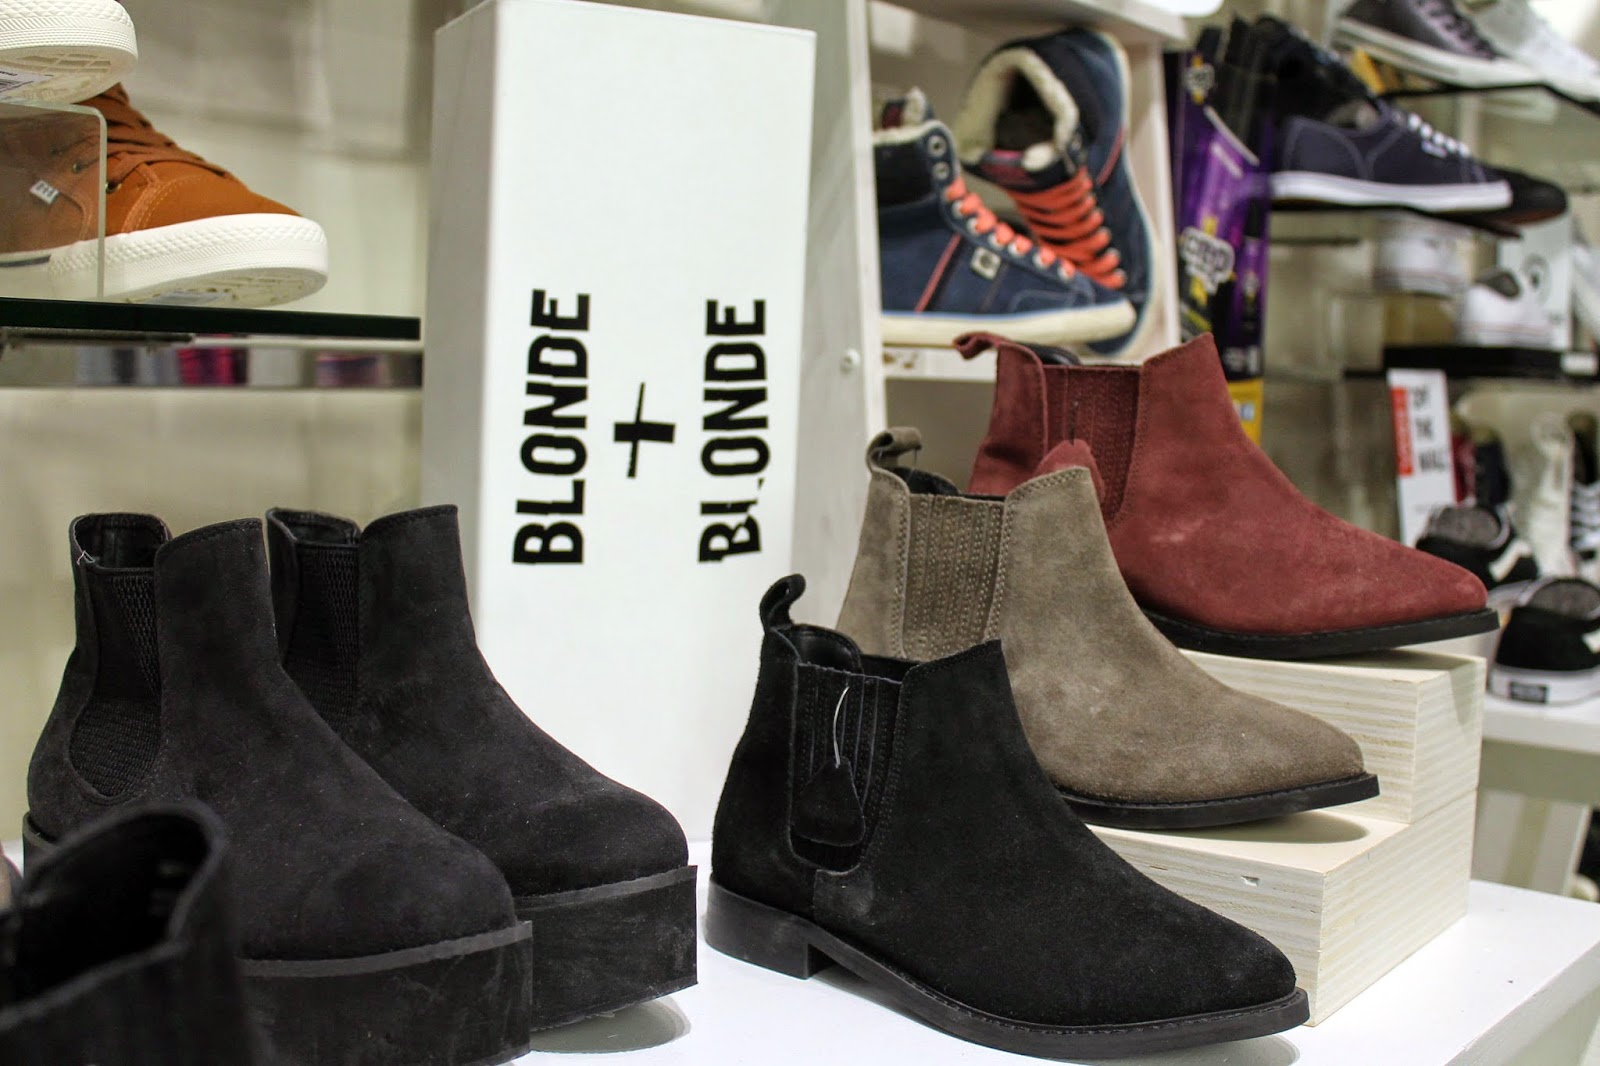 BANK fashion warrington store blonde and blonde ankle boots AW14